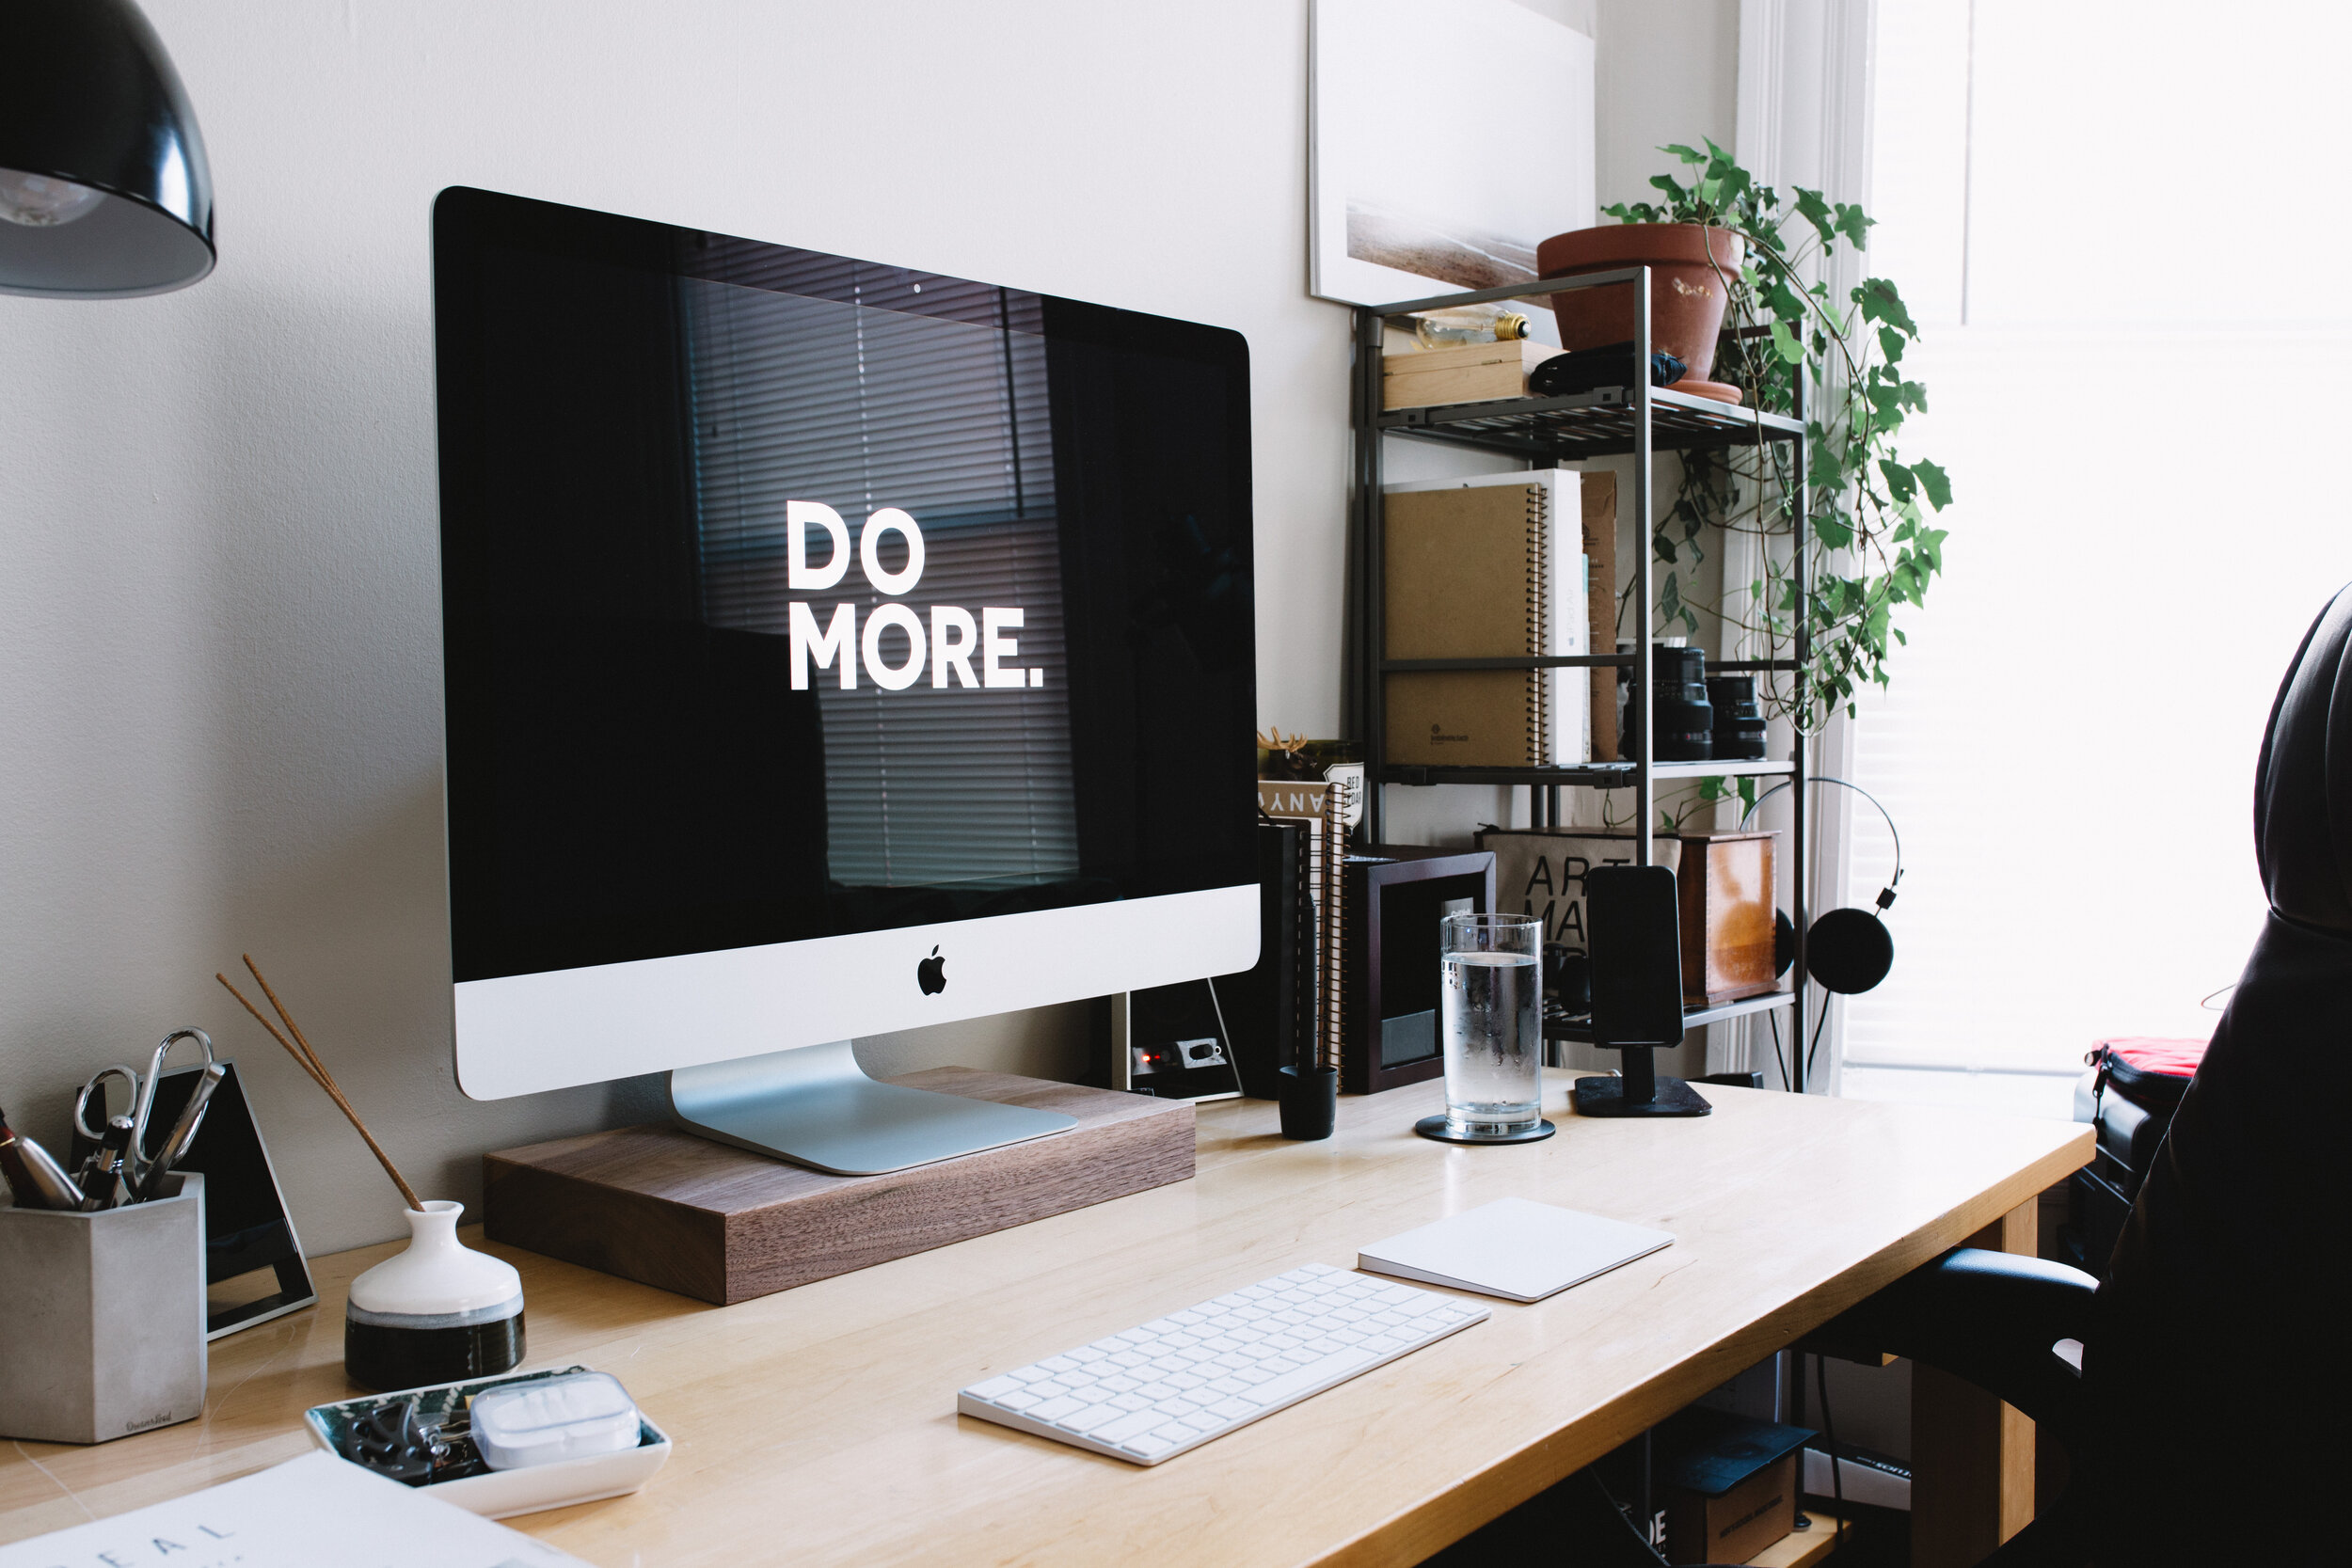 Spend More Time On Your Business - Let Boost Media take care of your marketing and website requirements